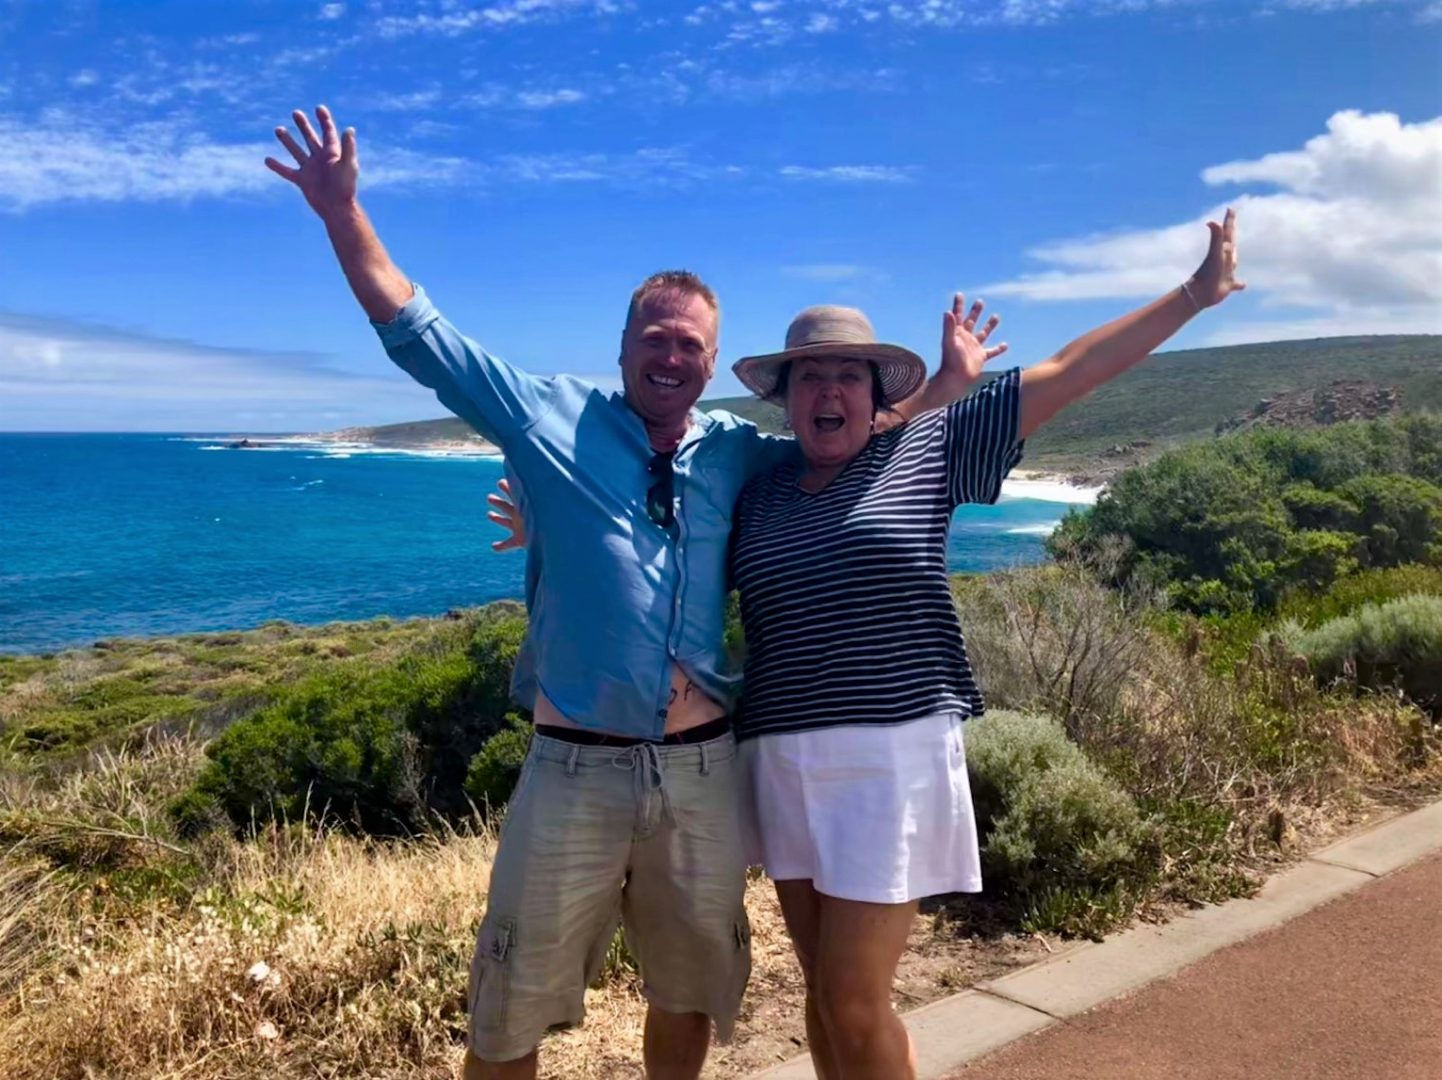 Day tour of the Margaret River Region of Western Australia.